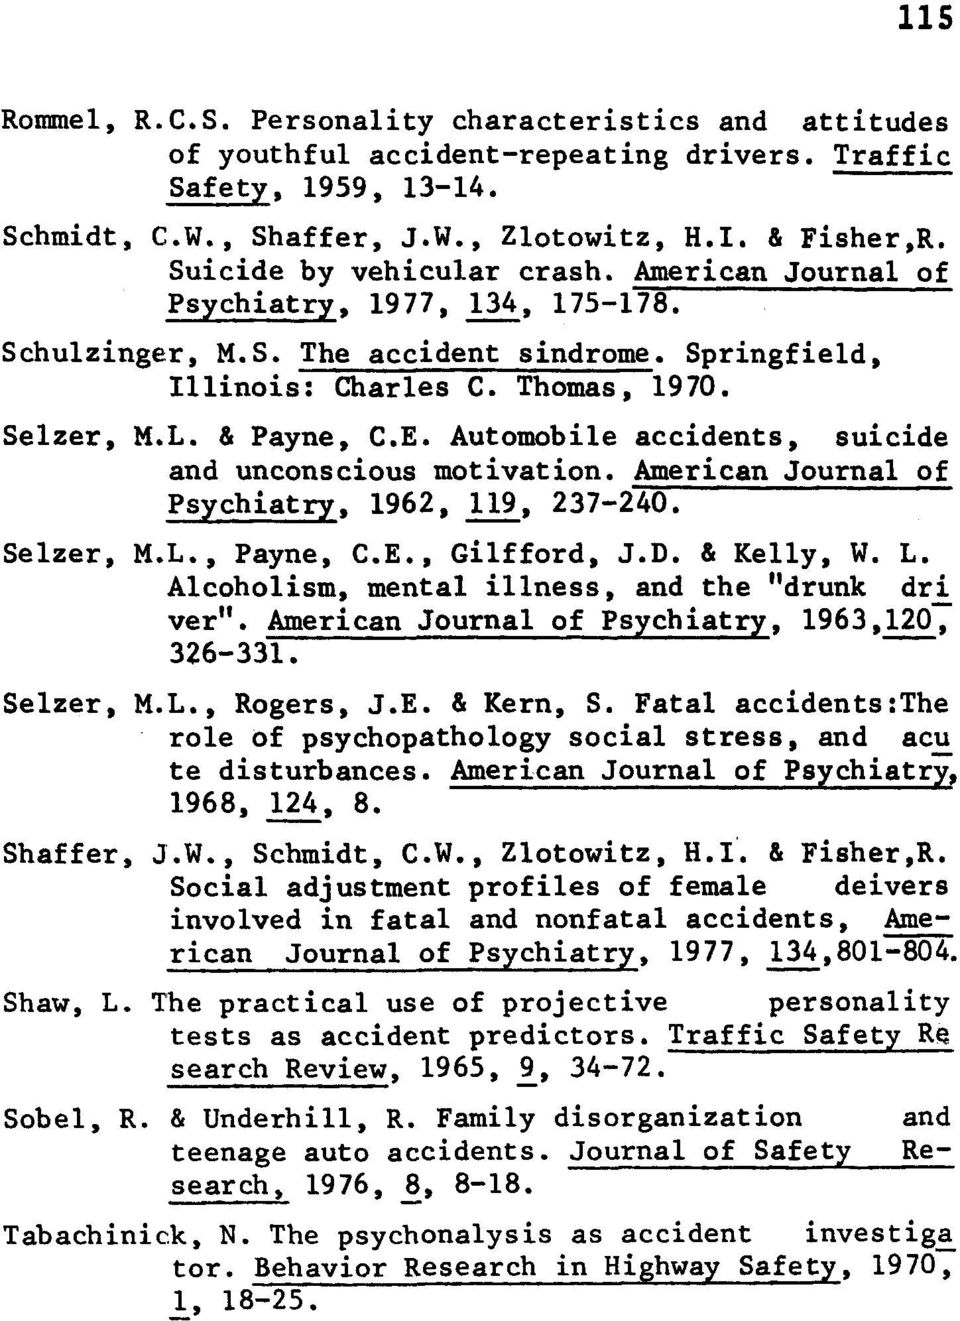 Automobile accidents, suicide and unconscious motivation. American Journal of Psychiatry, 1962, 119, 237-240. Selzer, M.L., Payne, C.E., Gilfford, J.D. & Kelly, W. L.